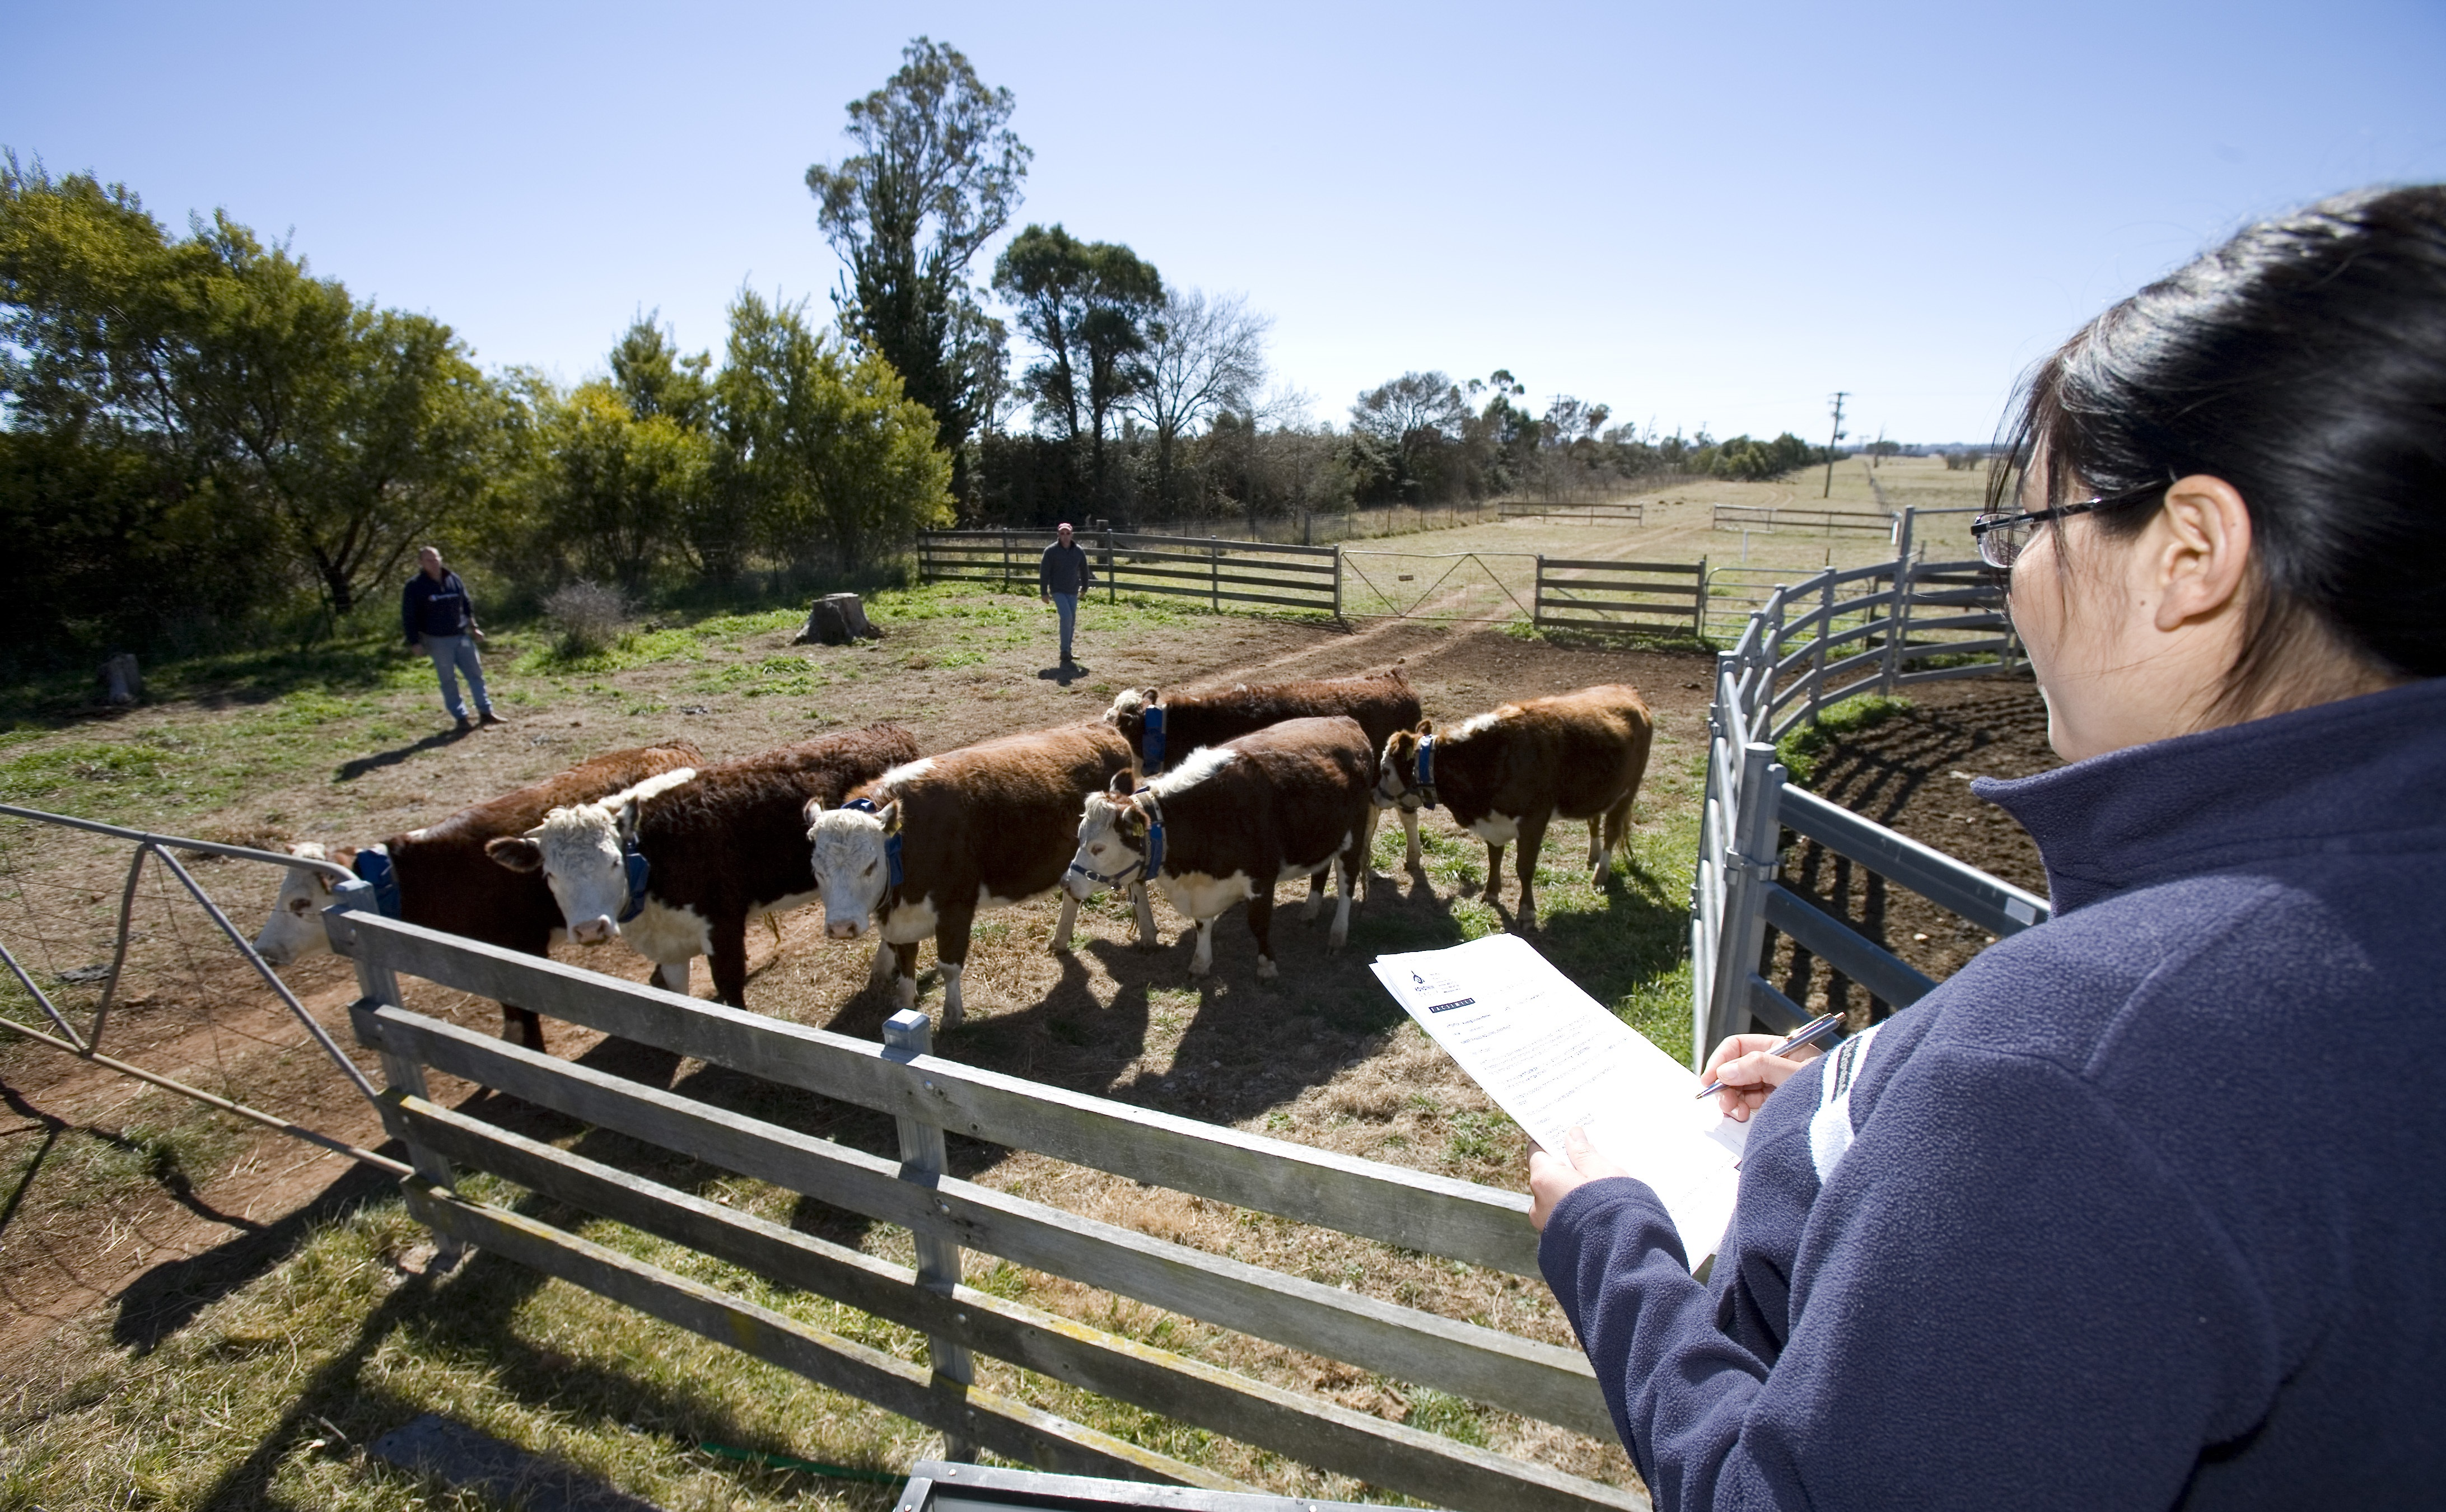 A woman standing beside a cattle yard recording information on a notepad.